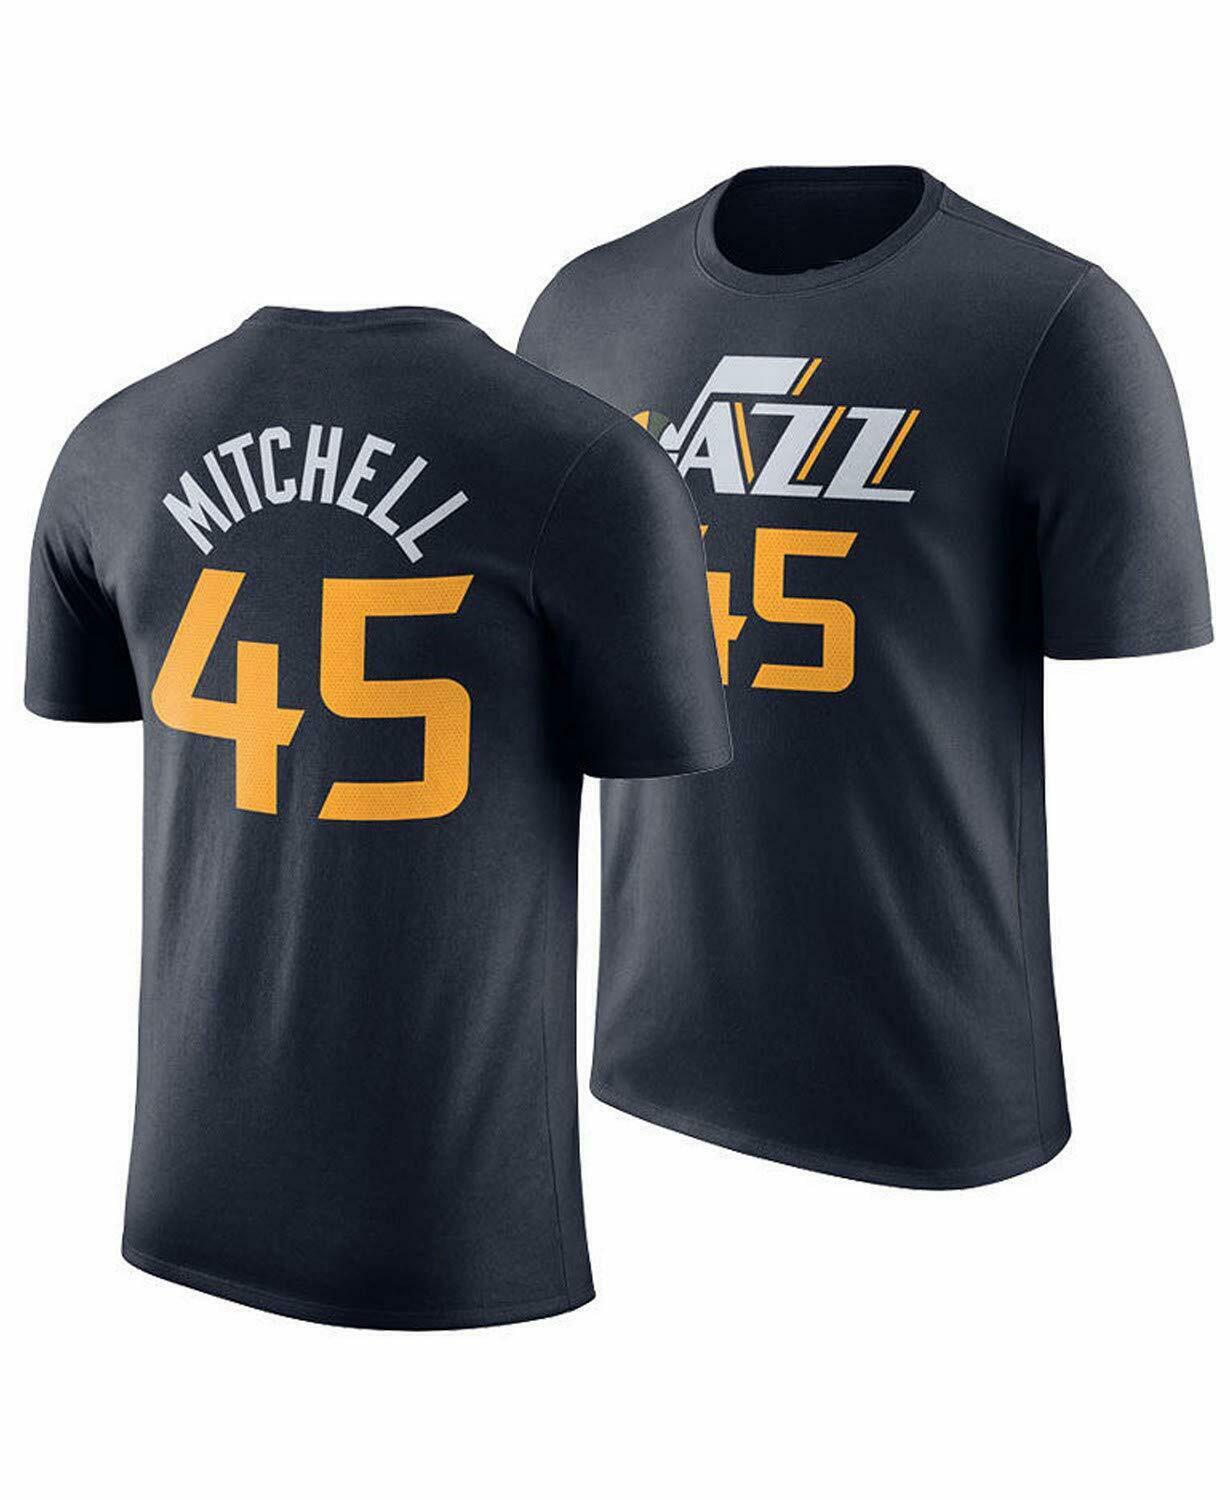 DONOVAN MITCHELL NAME NUMBER T-SHIRT